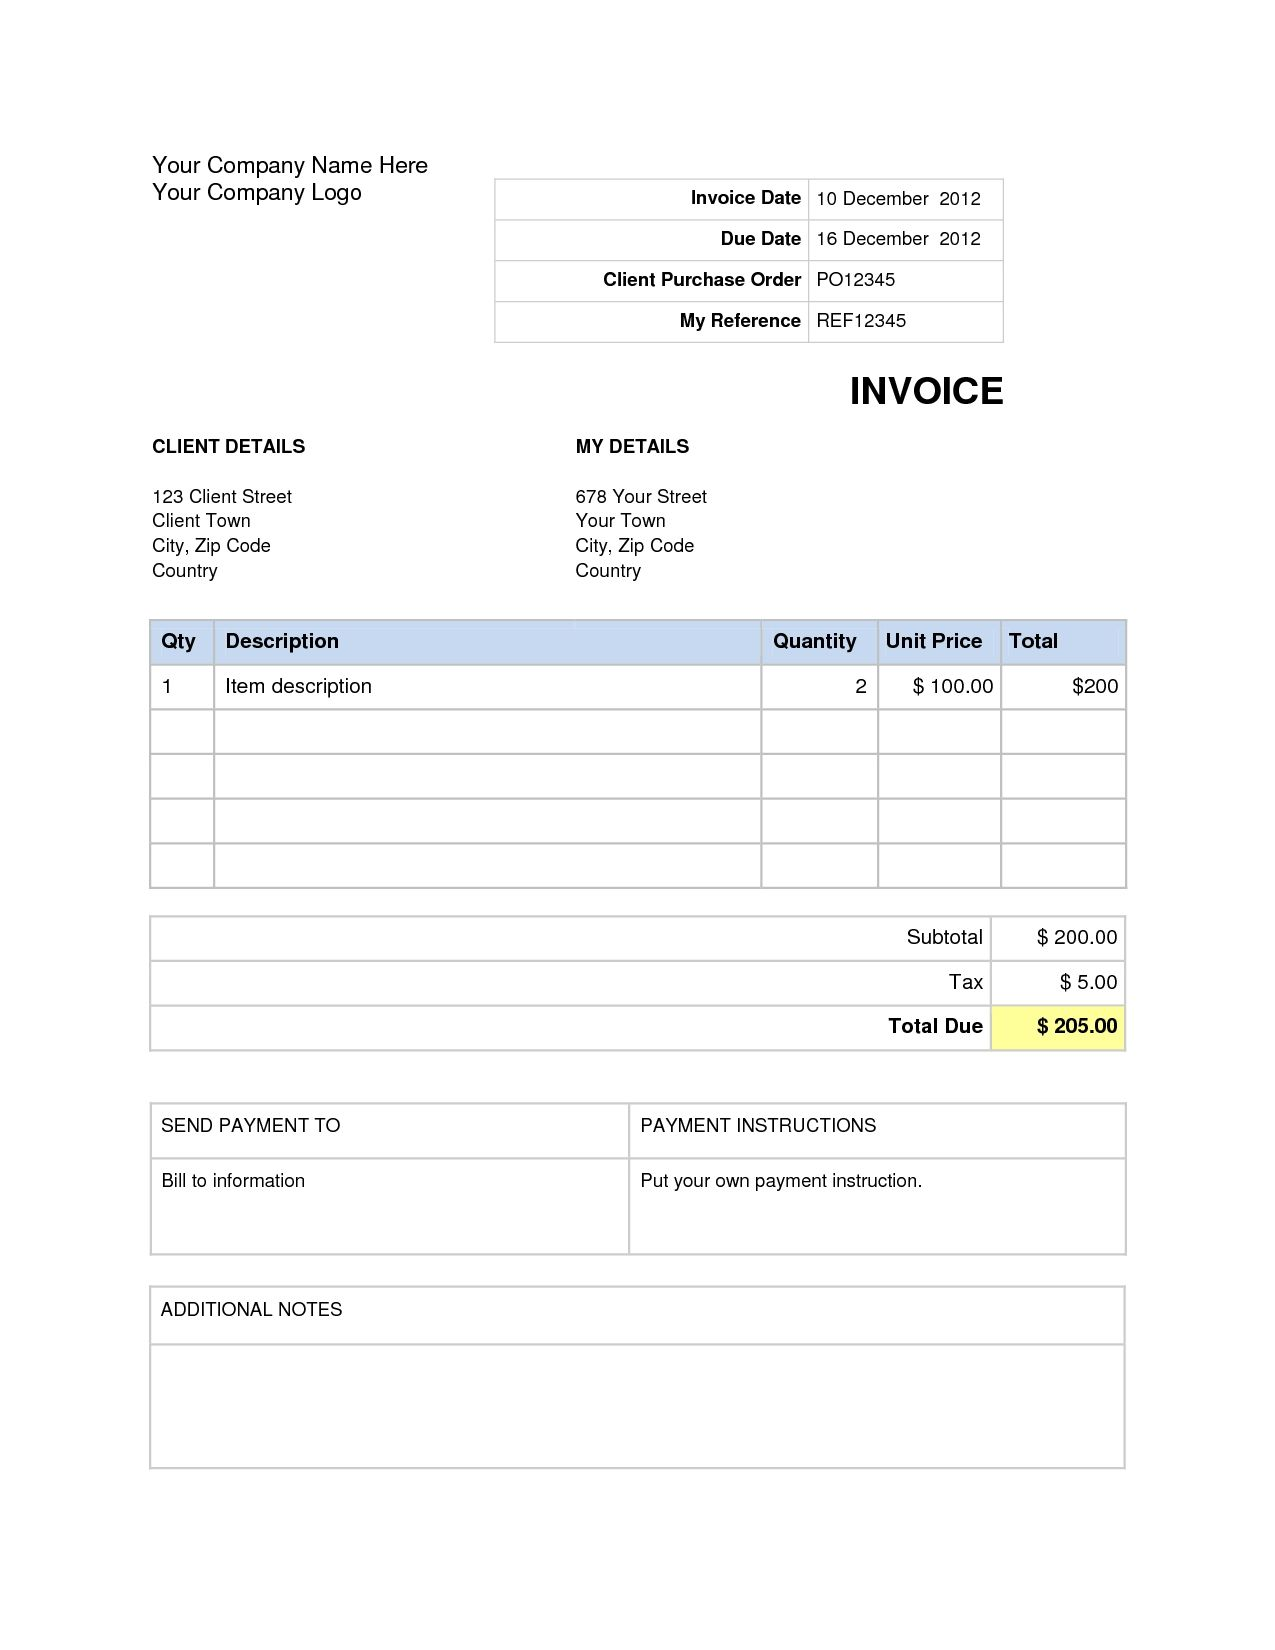 Blank Invoice Doc Golon Wpart Co